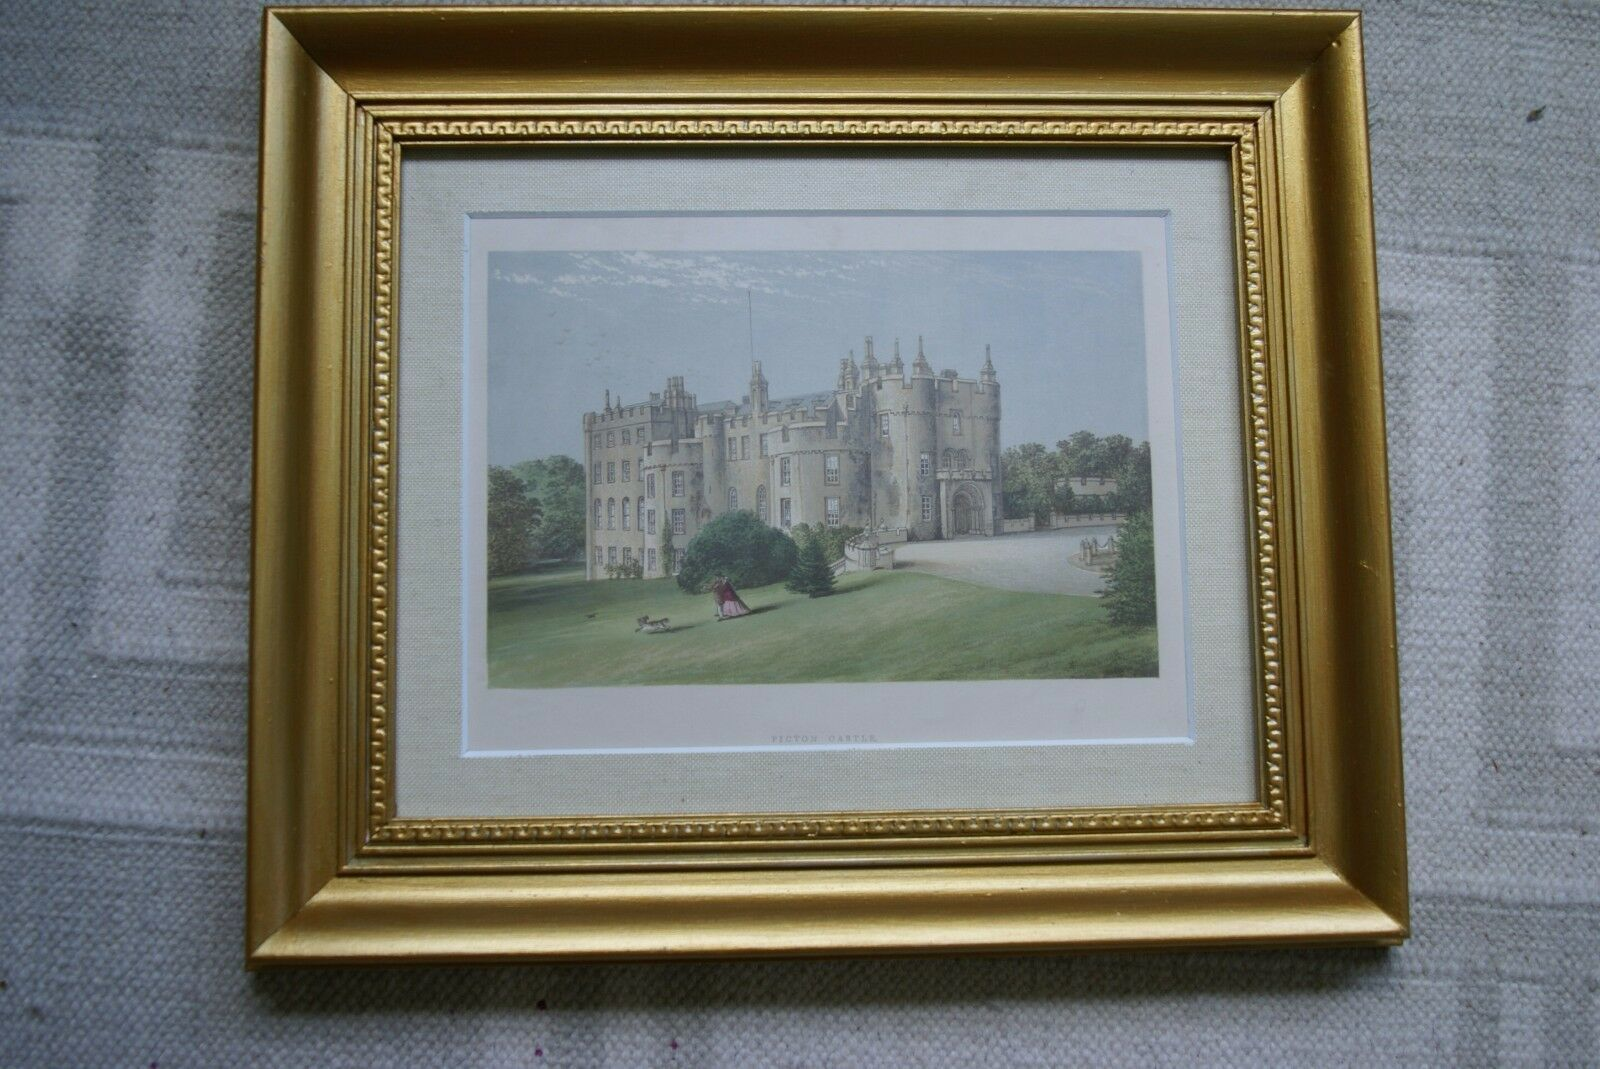 ANTIQUE 1870 19C  FRAMED ARCHITECTURAL PICTON CASTLE LITHOGRAPH MORRIS ENGLAND